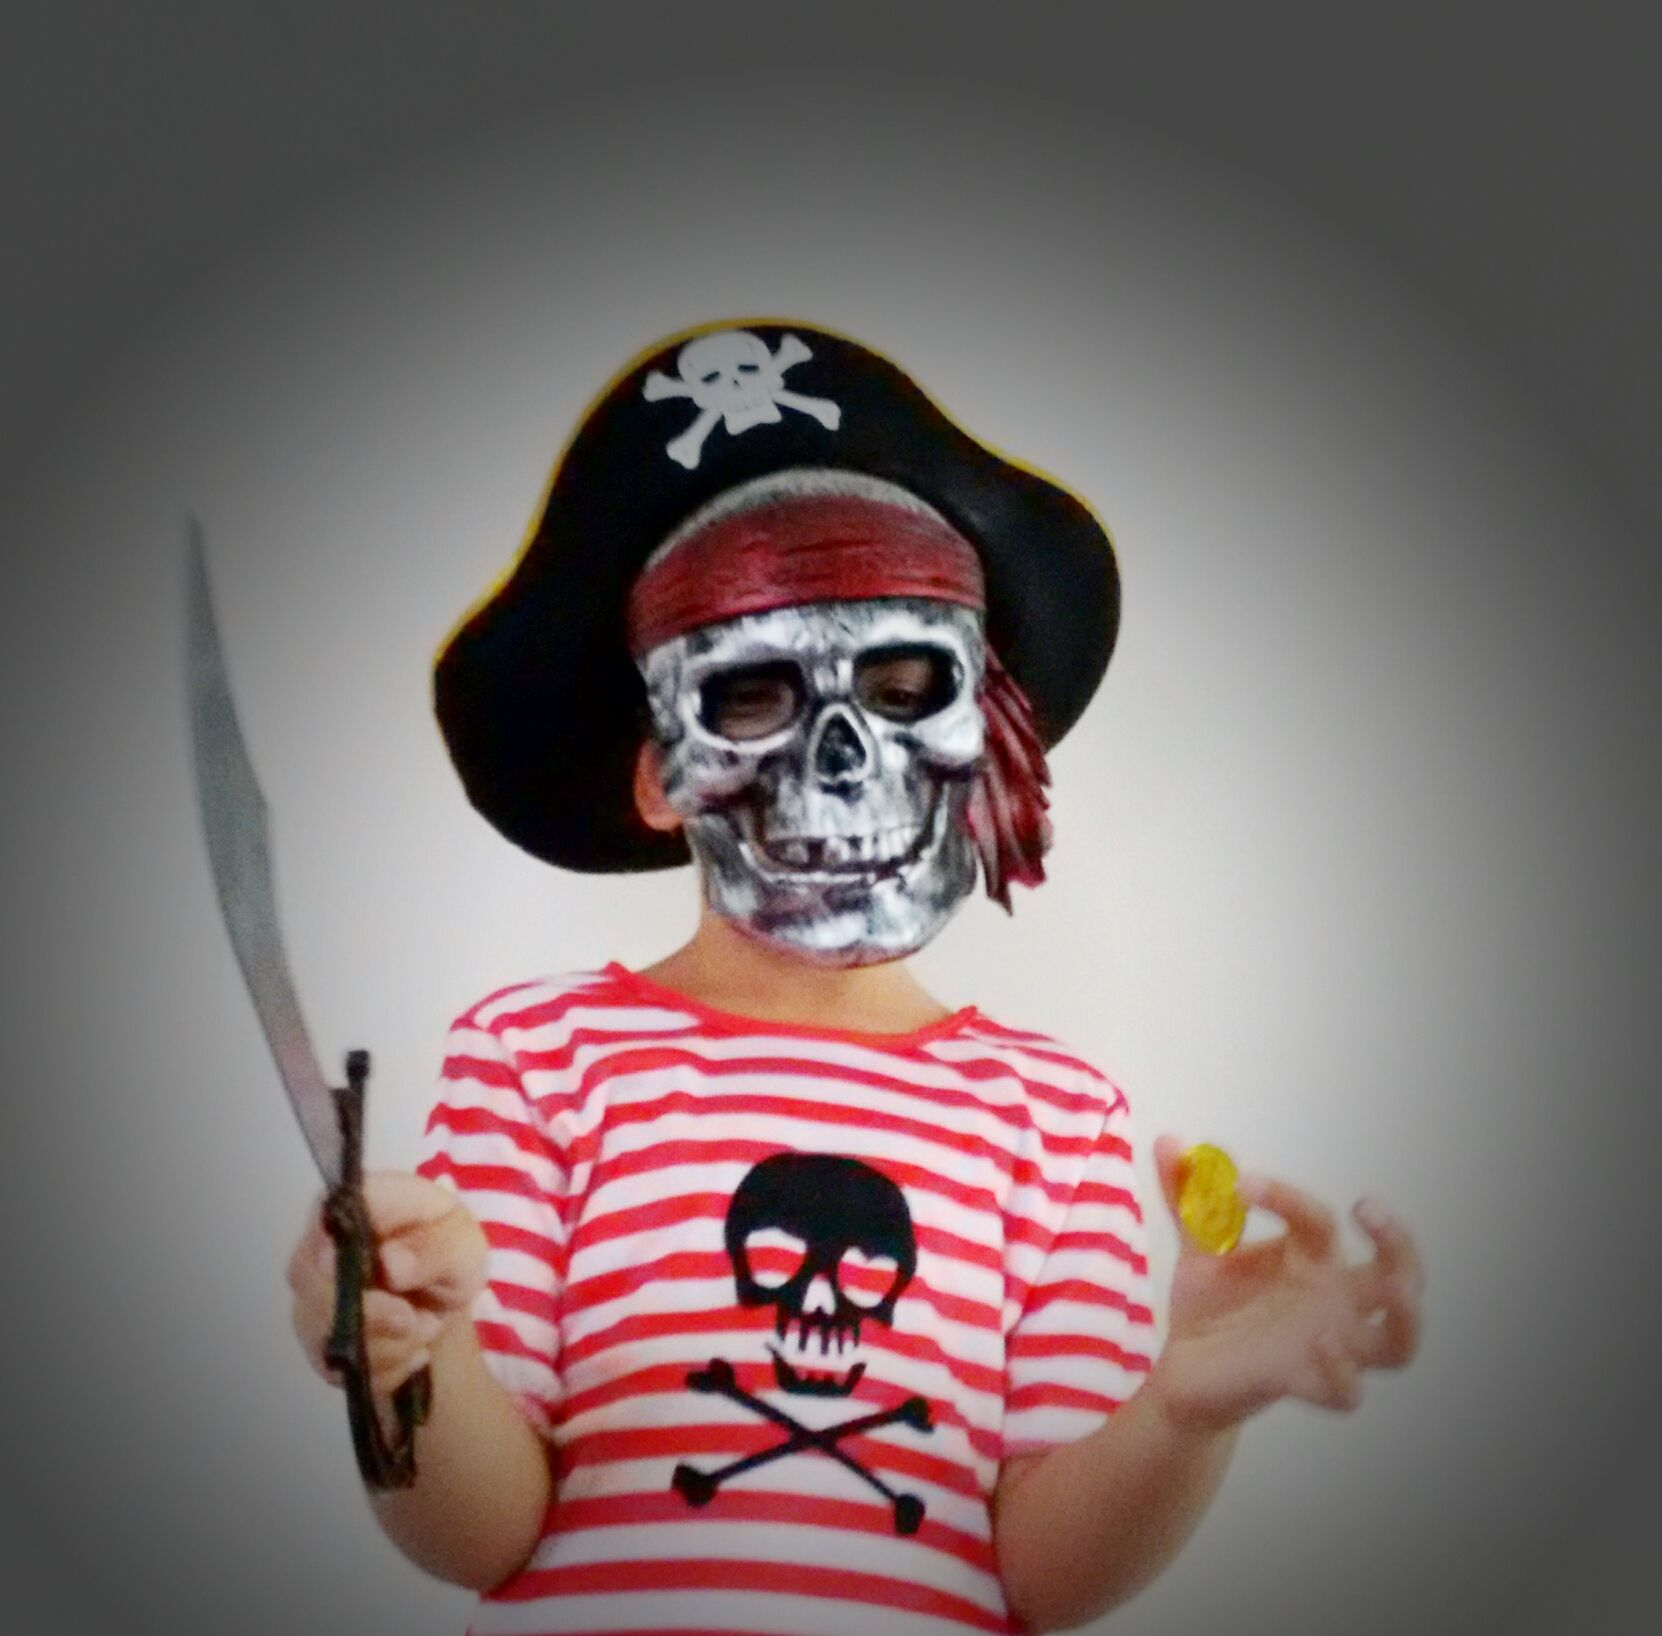 fun and awesome dress ups and dress up boxes for boys at www.thedressupbox.net.au